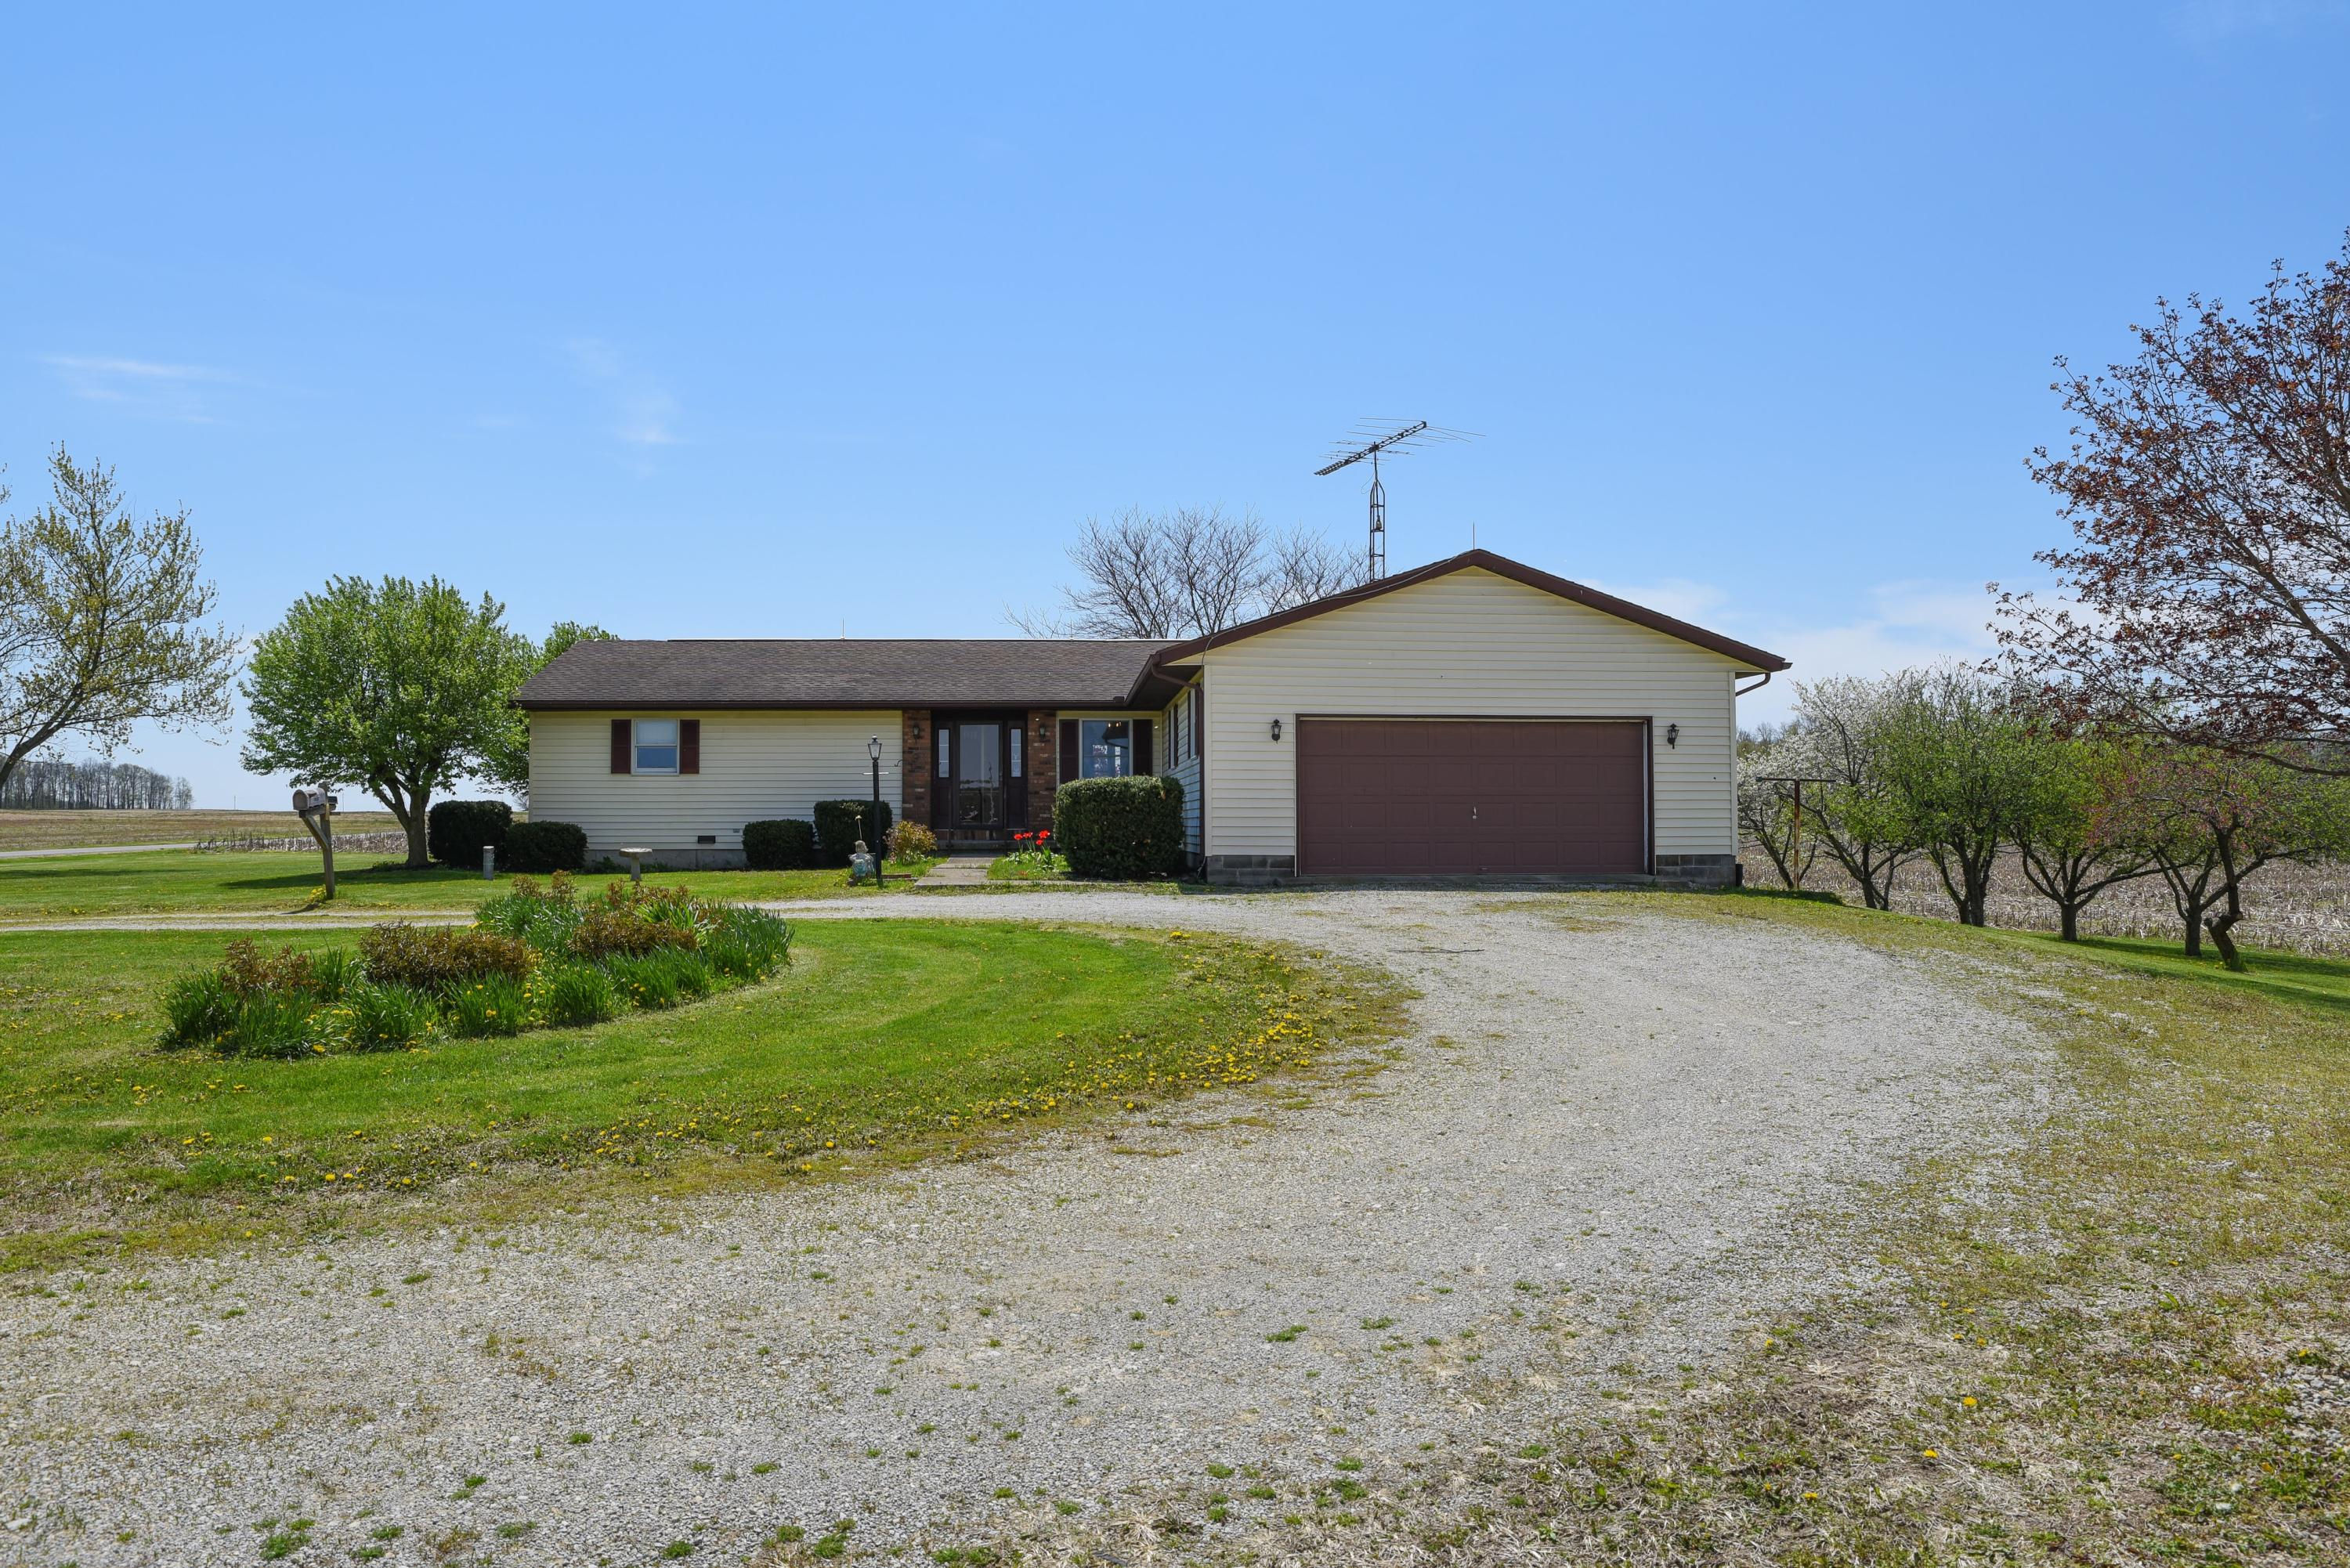 19333 Pasco Montra Rd Botkins, OH